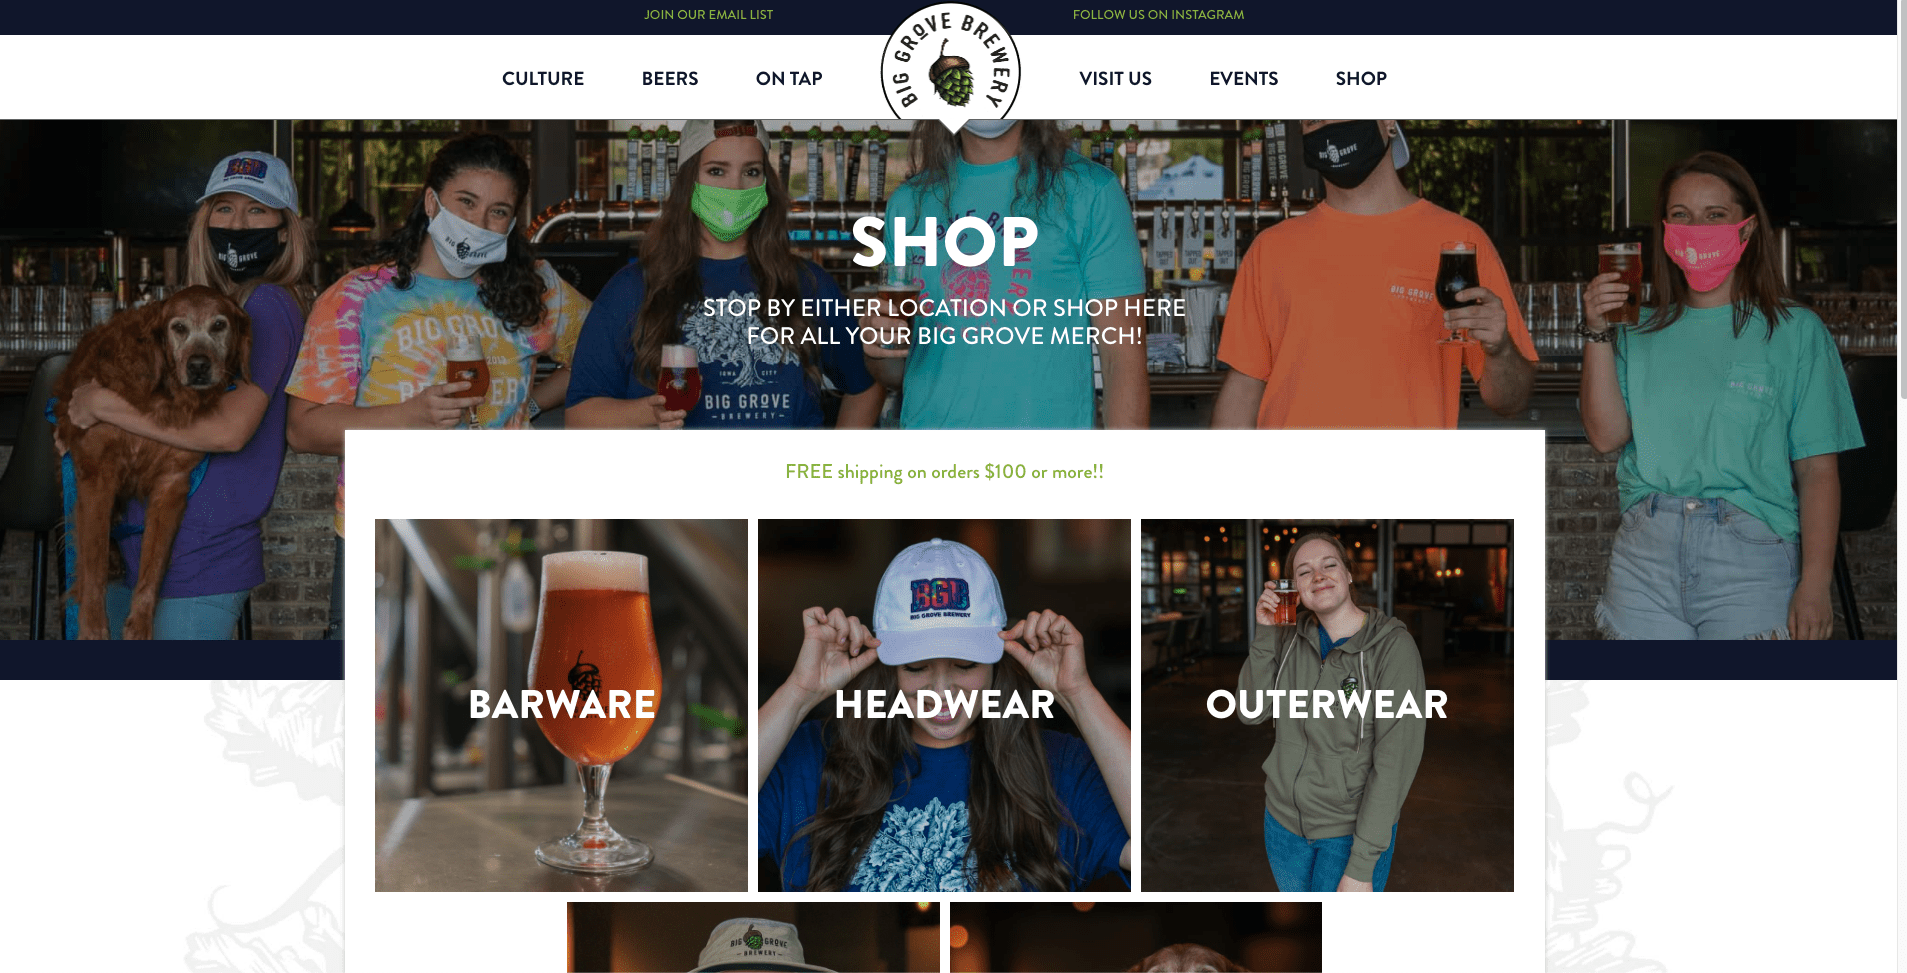 Big Grove Brewery Online Store